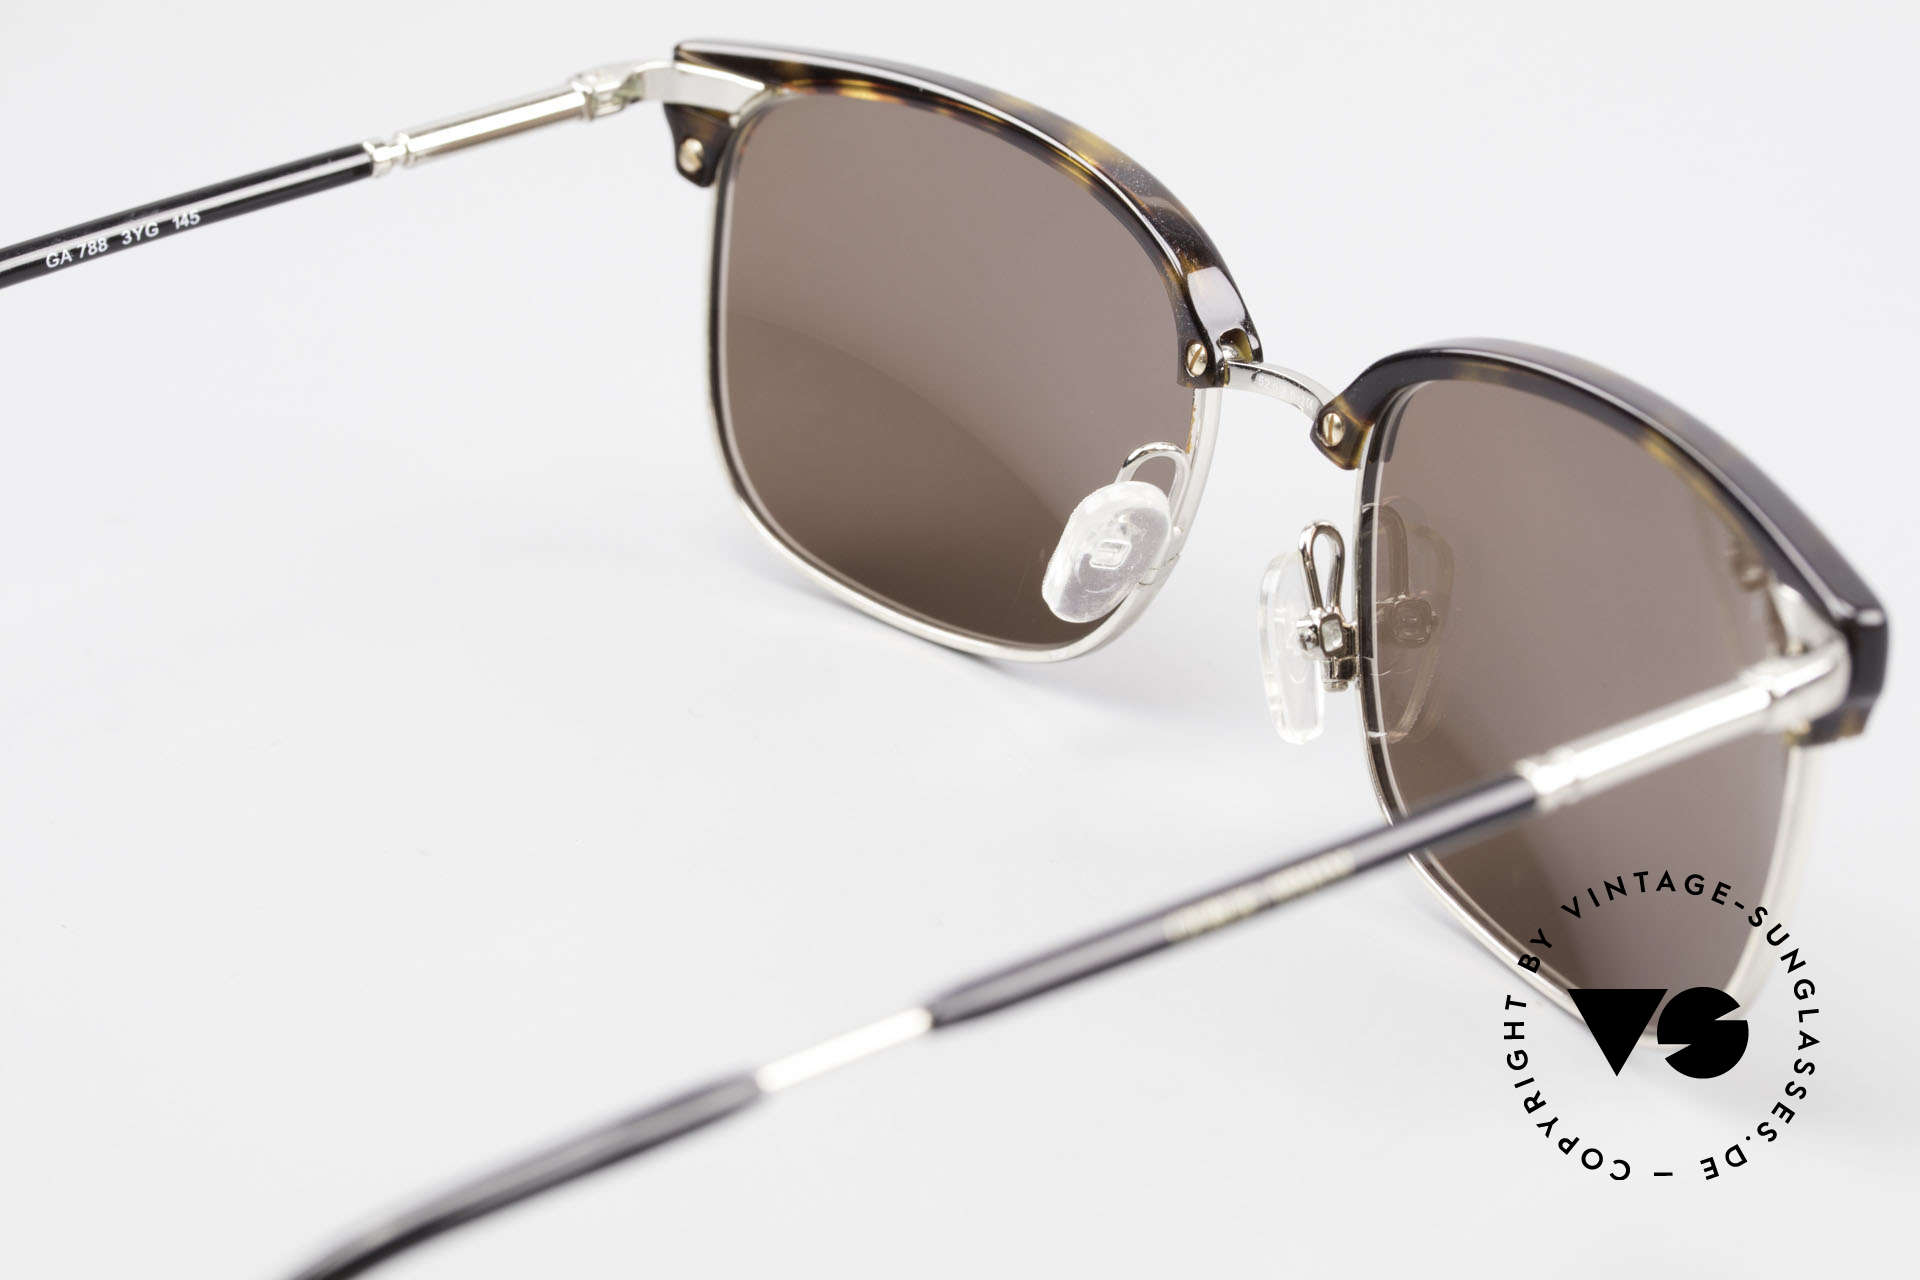 Giorgio Armani 788 Square Panto Sunglasses Men, frame can be glazed with optical lenses of any kind, Made for Men